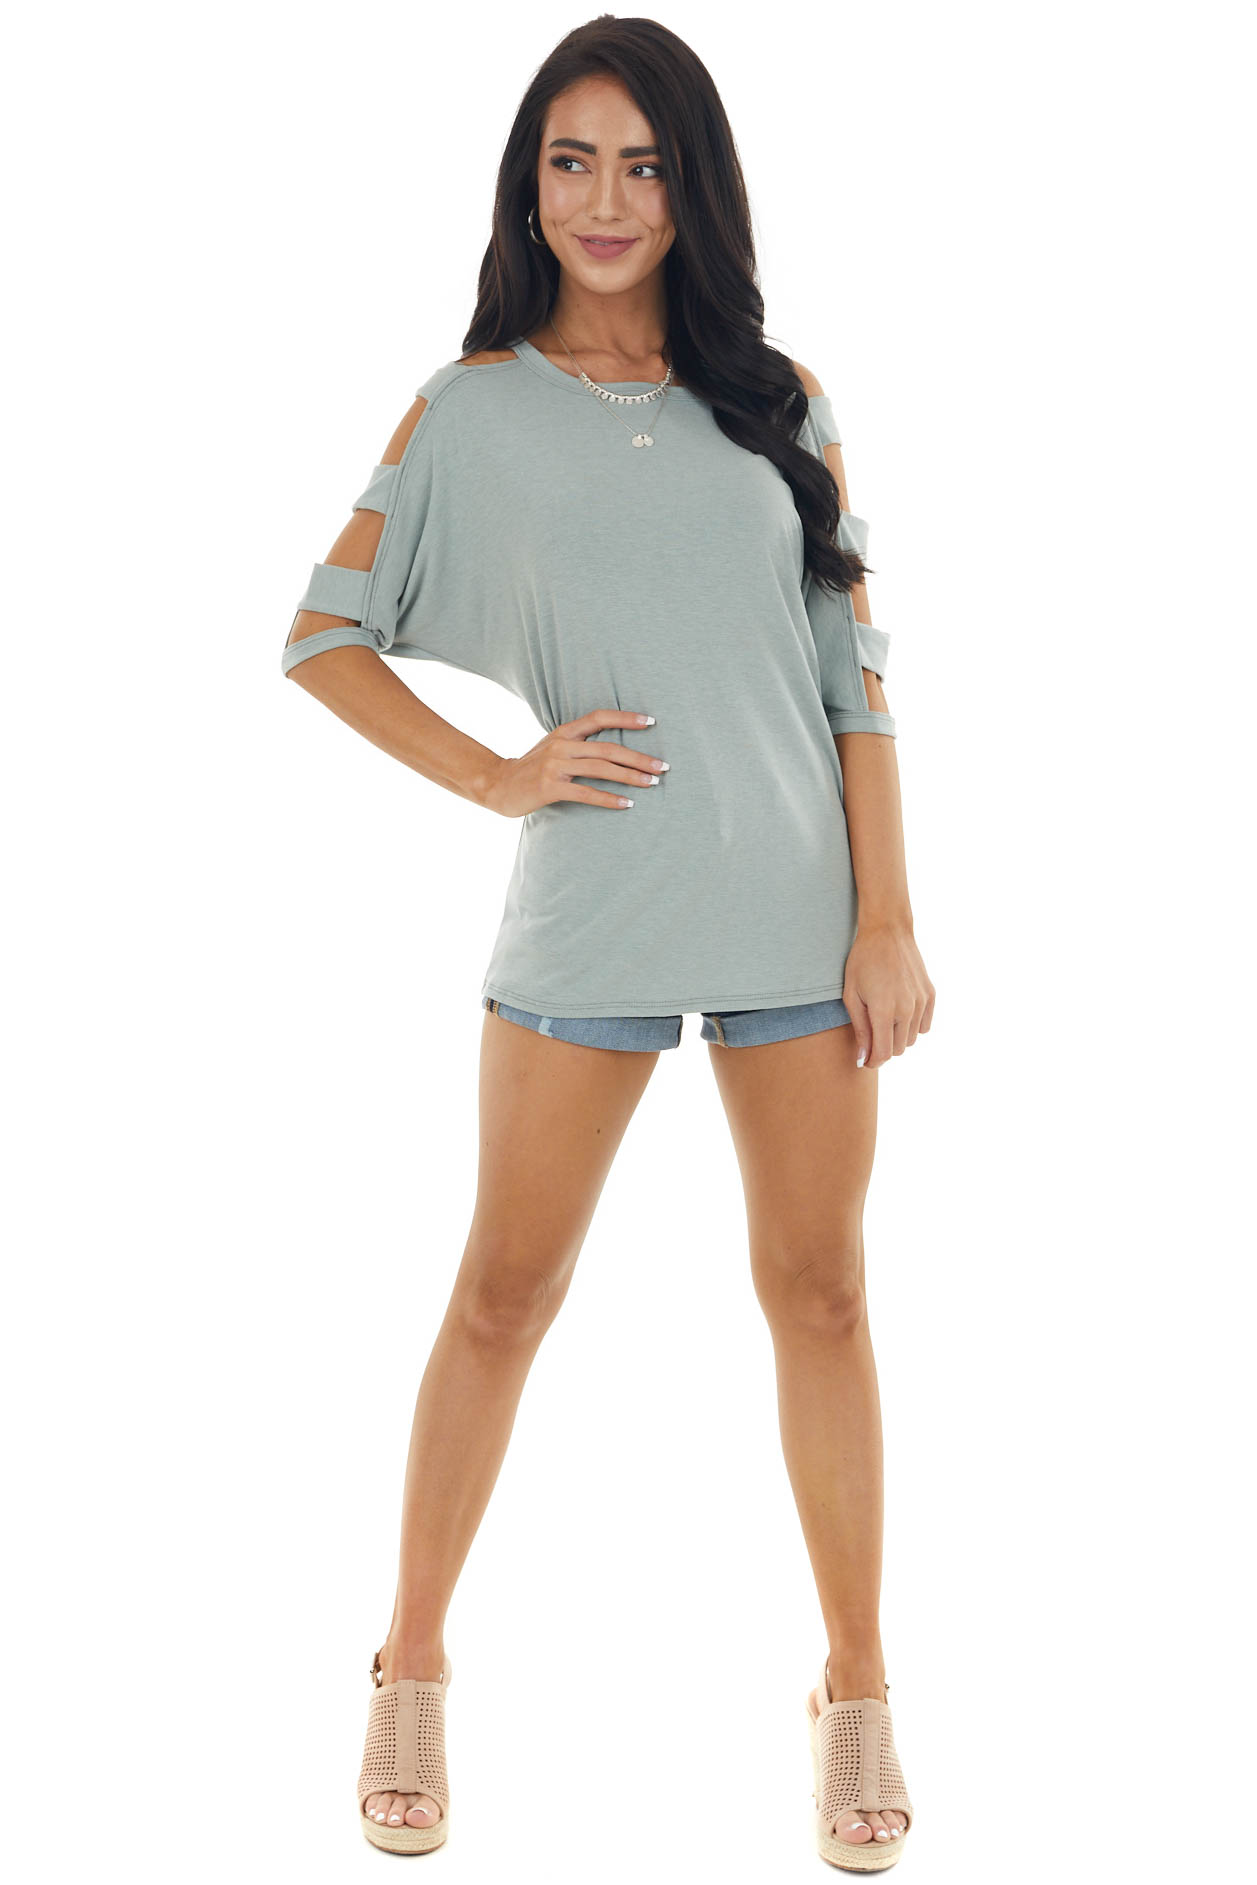 Sage Knit Top with Ladder Cut Out Half Length Sleeves